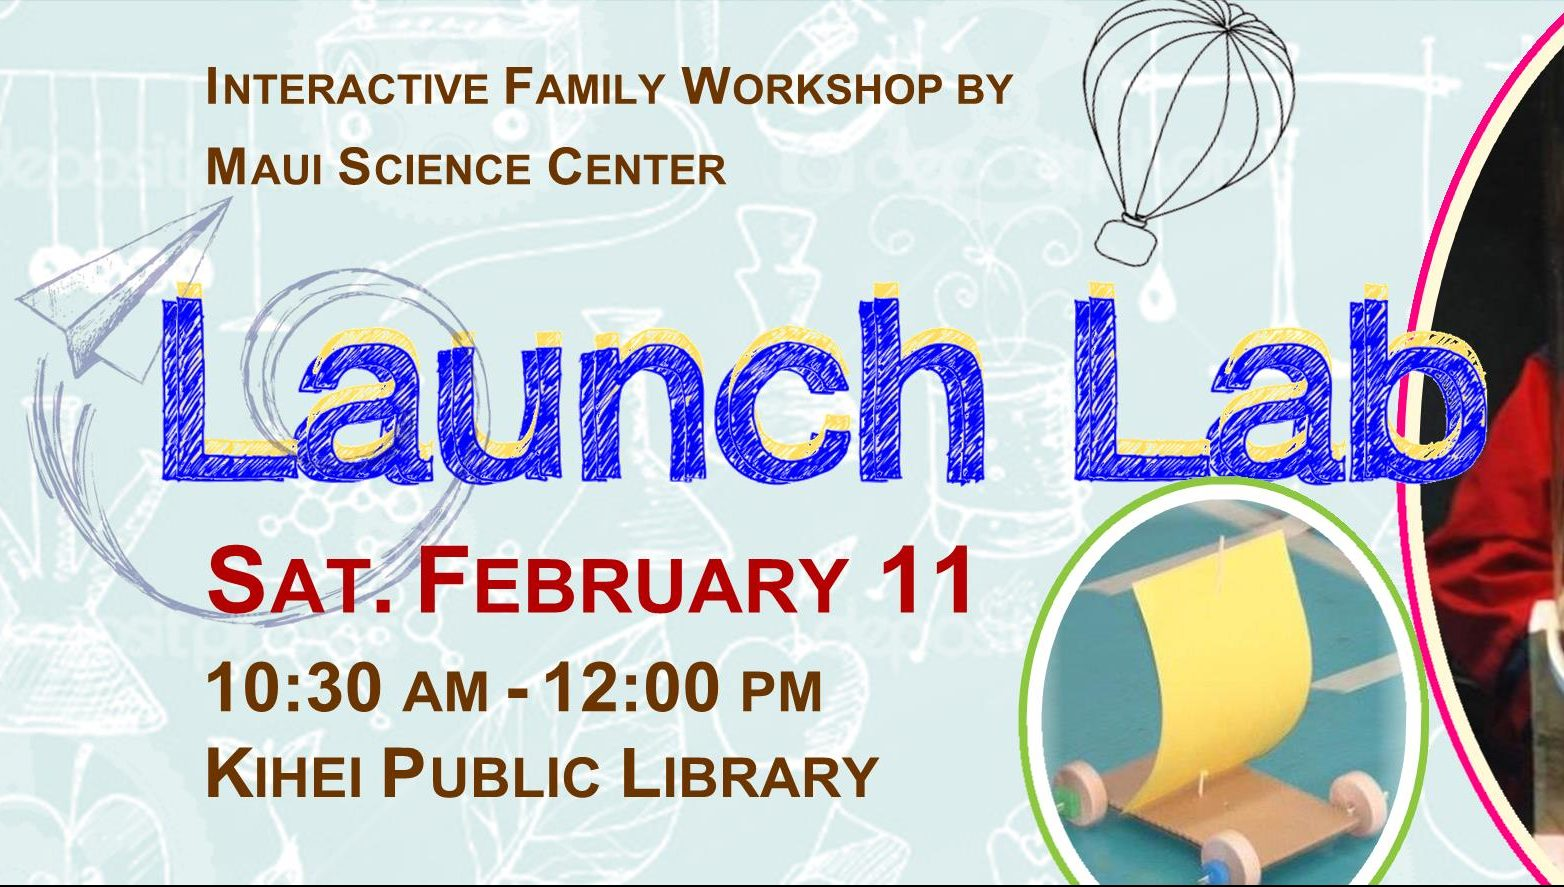 Launch Lab – Family Workshop at Kihei Public Library